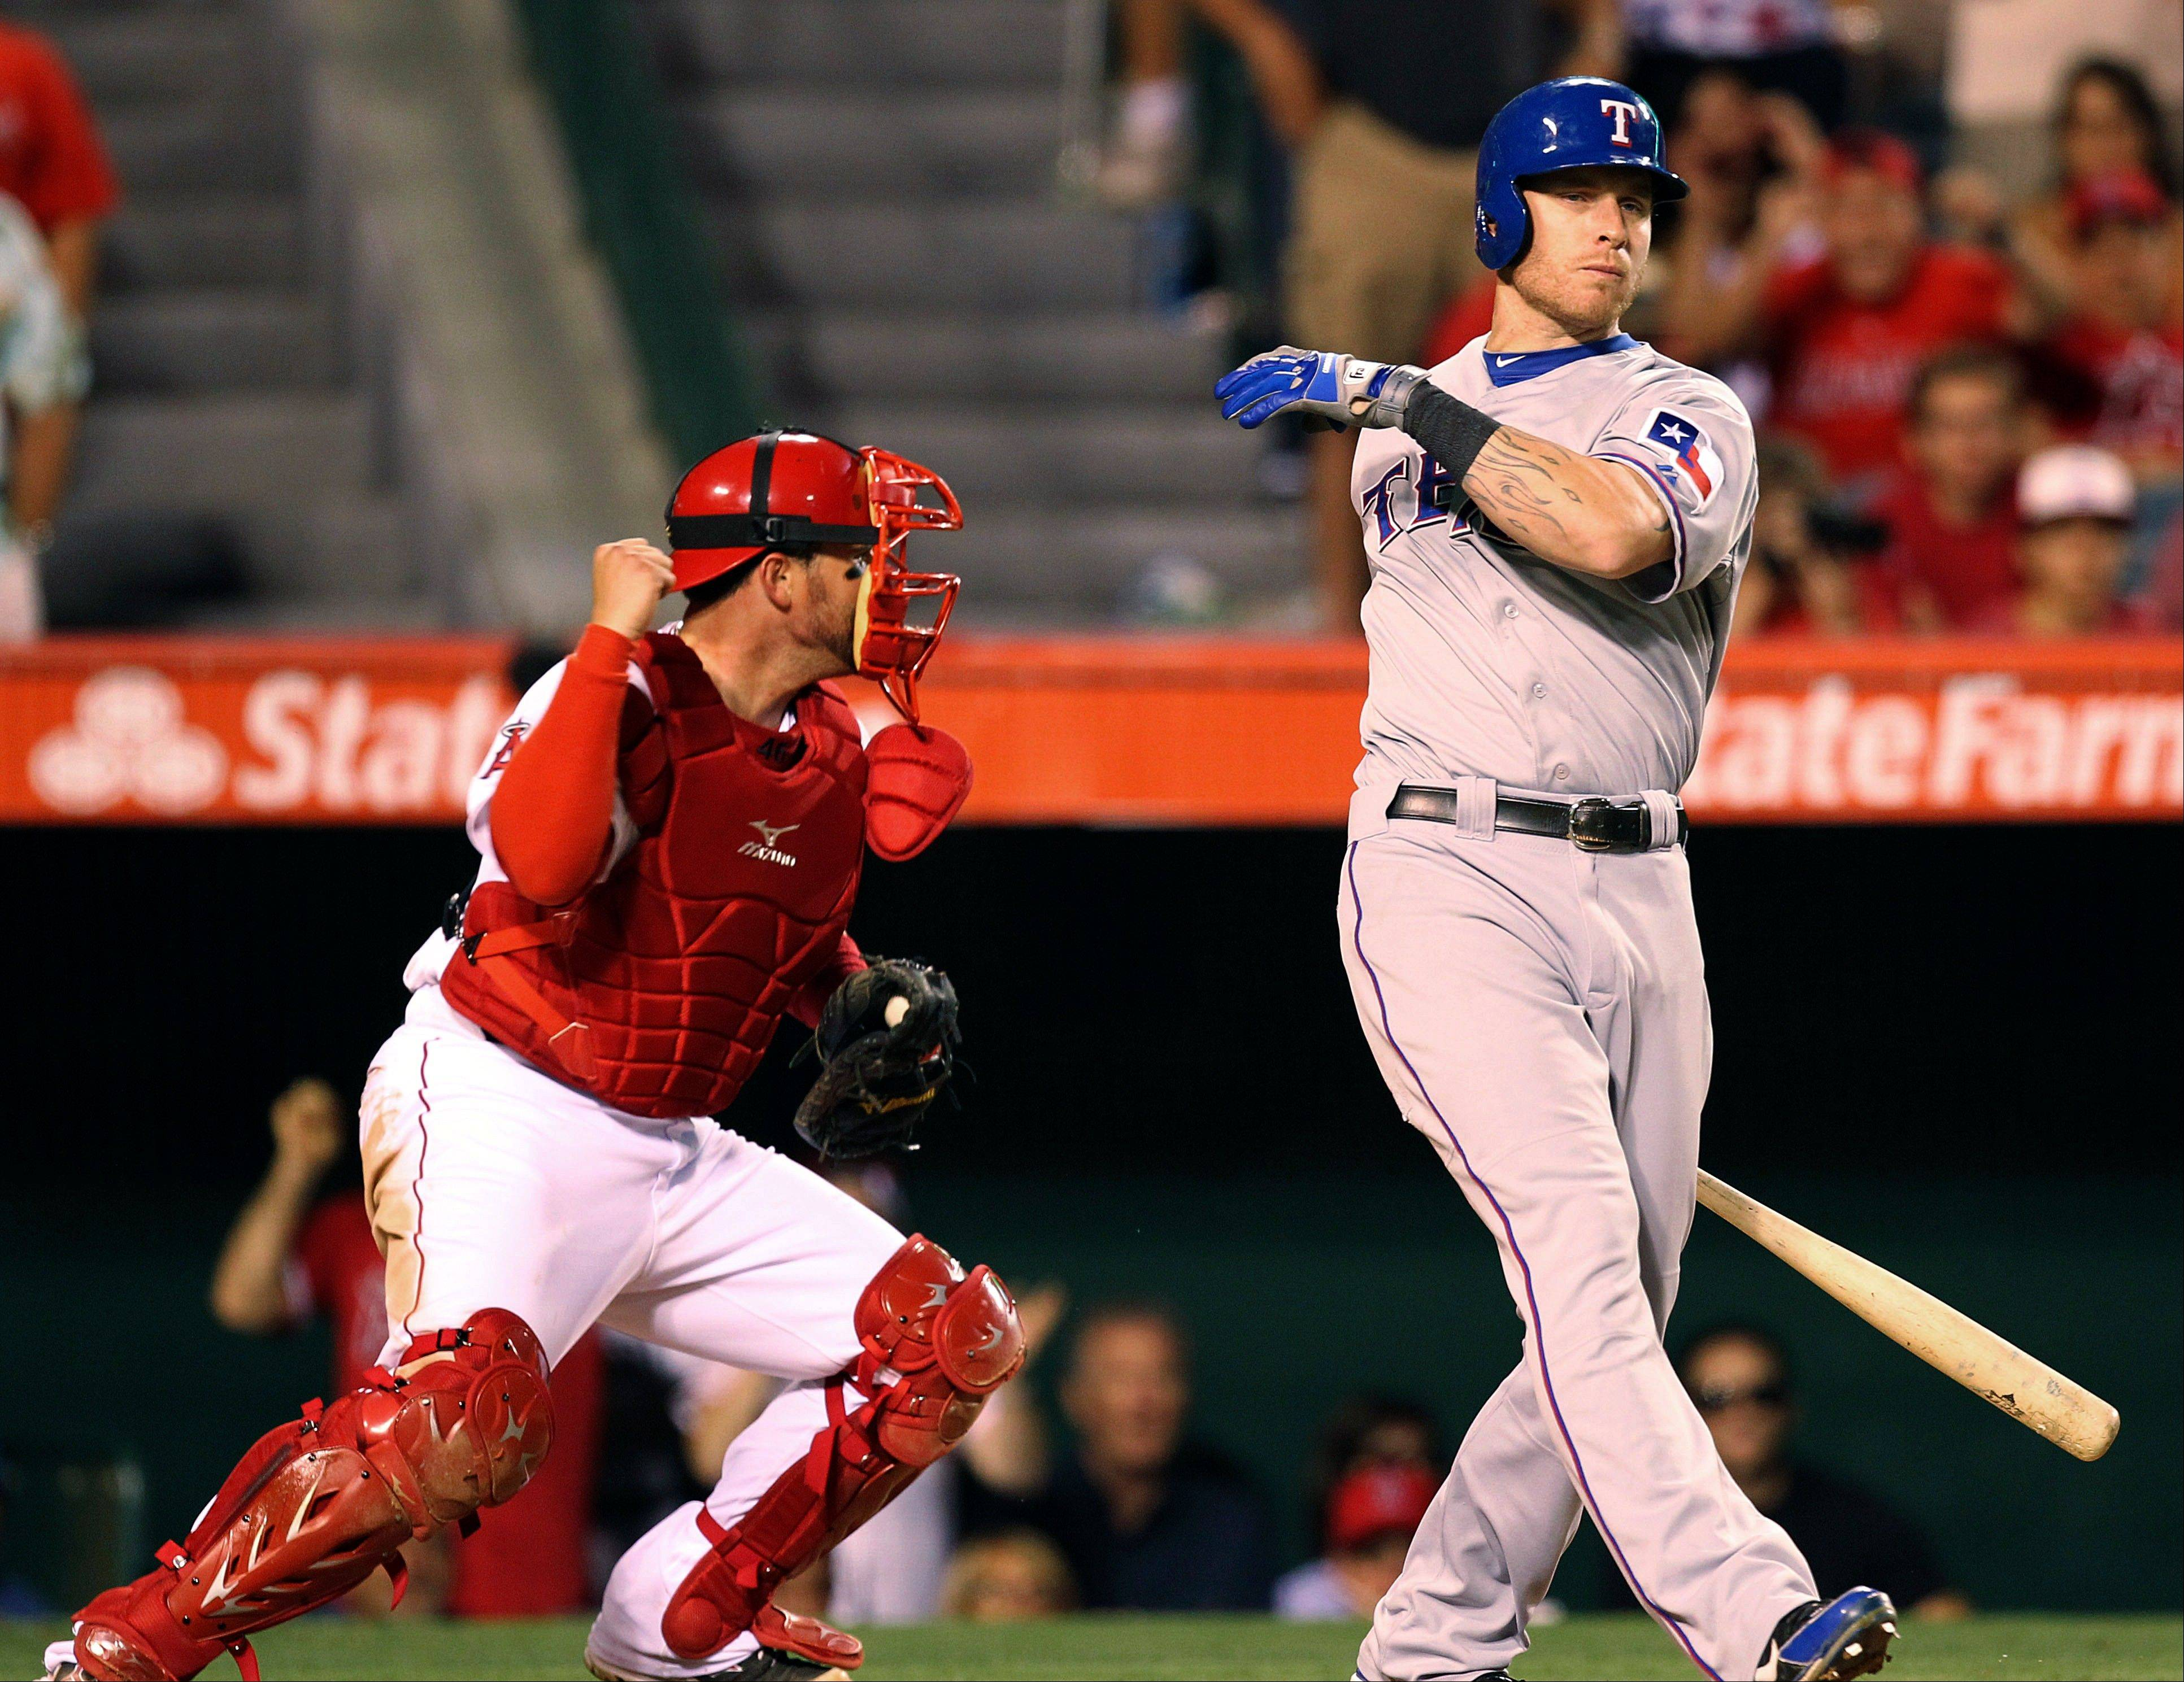 The Rangers� Josh Hamilton strikes out swinging for the final out as Angels catcher Bobby Wilson begins to celebrate a 7-4 win Sunday in Anaheim, Calif.